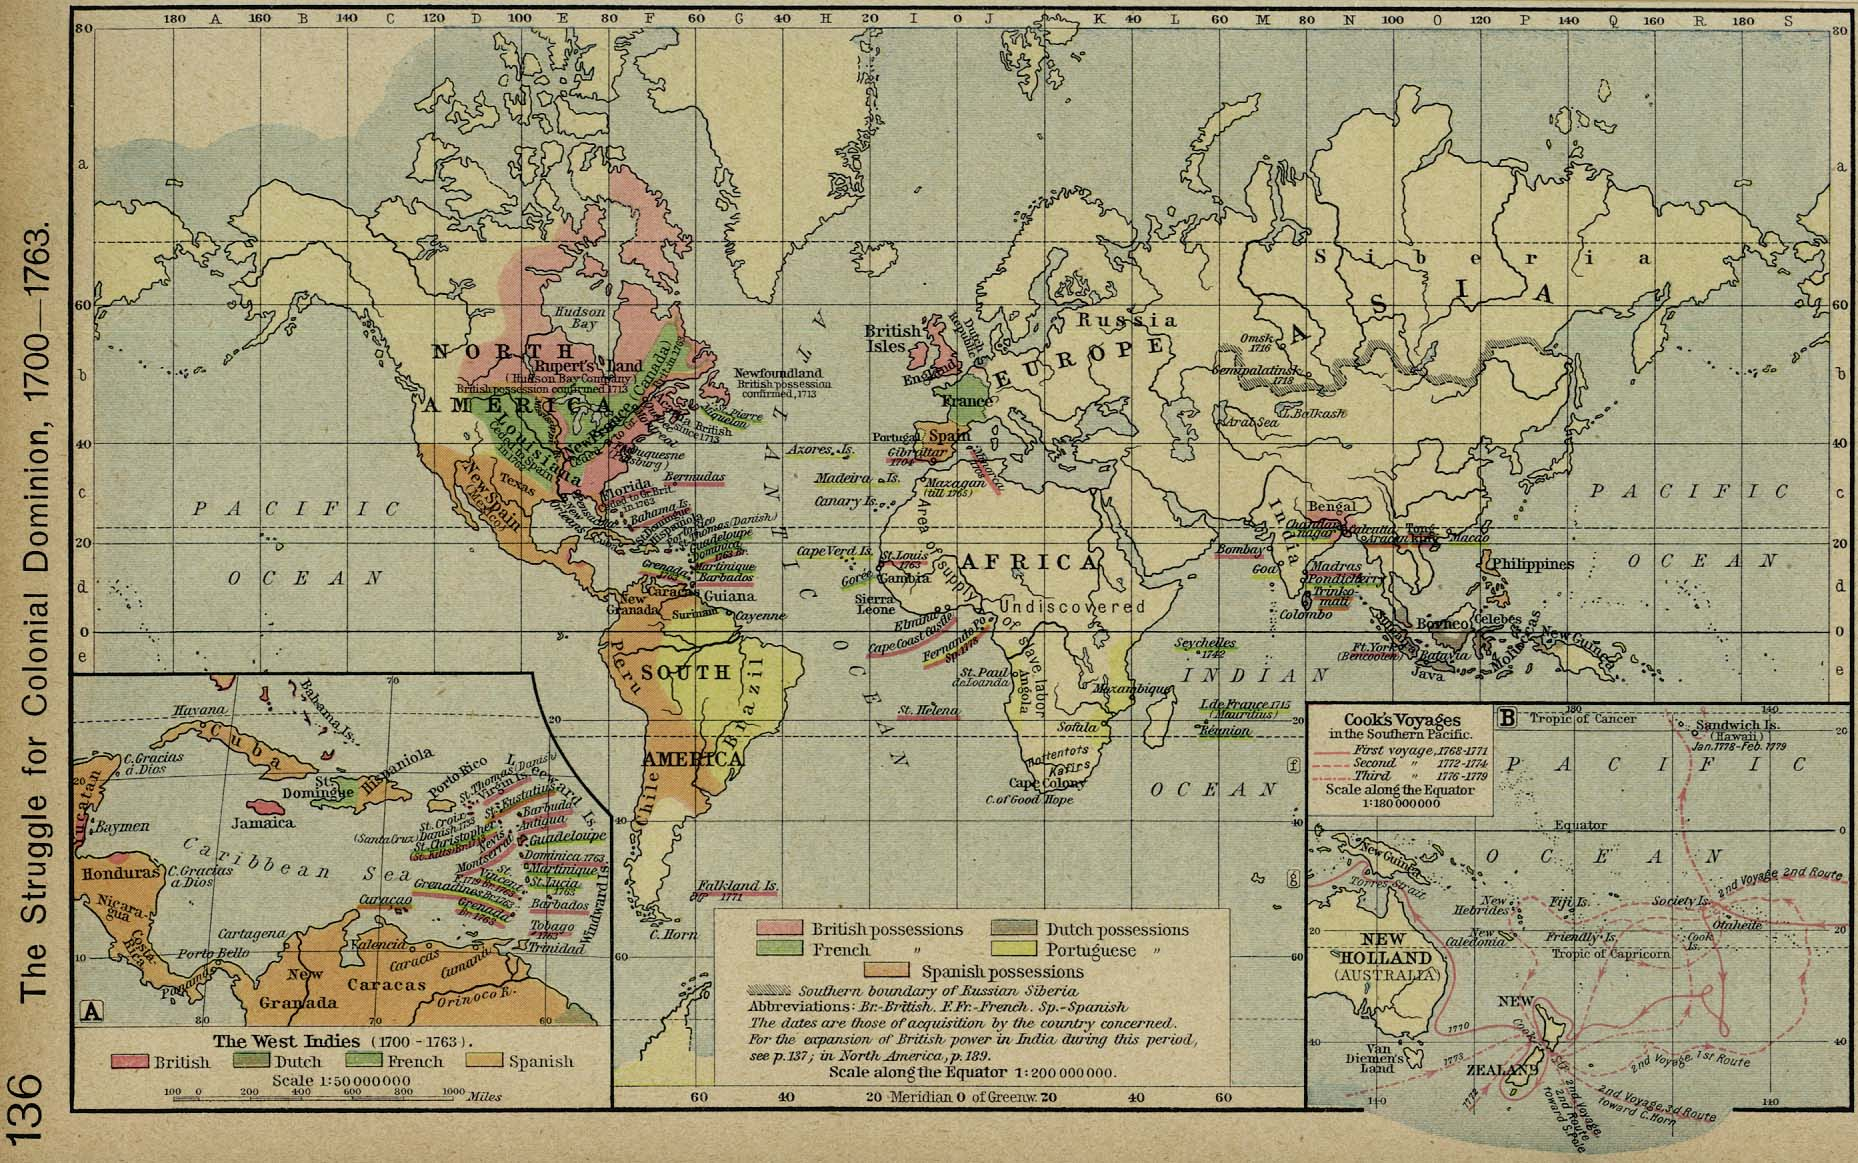 World Map 1700 - 1763: Colonies